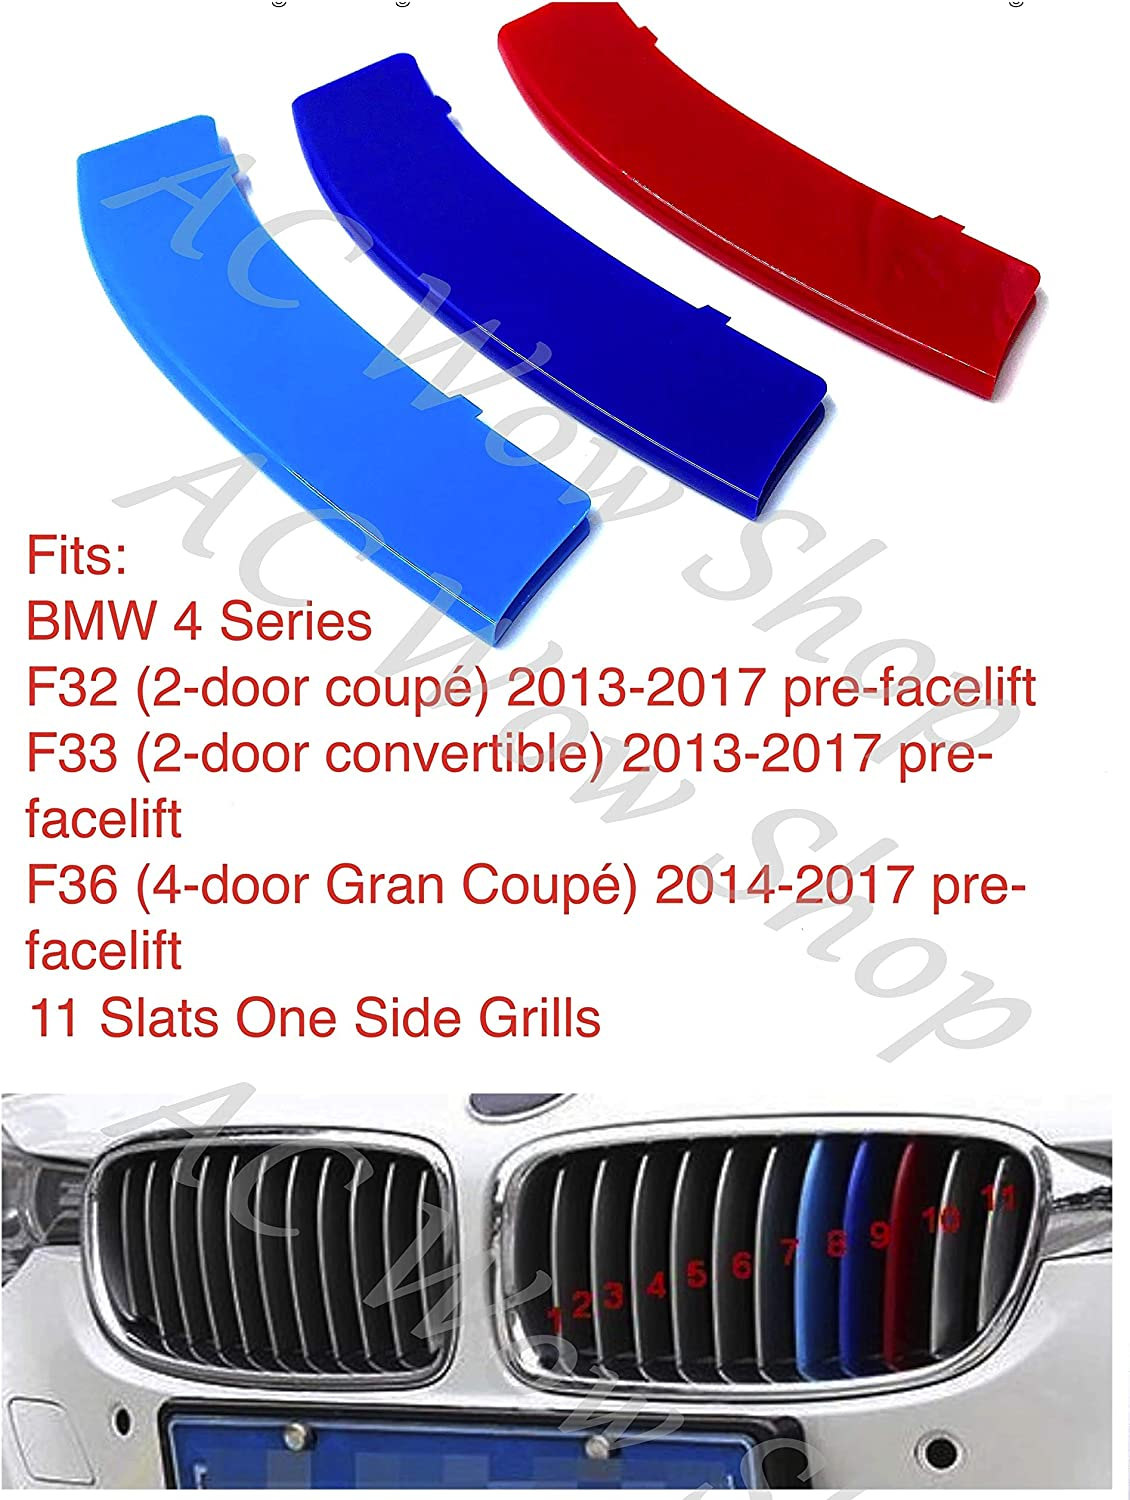 compatible with B M W 4 Series F32 F33 F36 2013-2017 11 BARS Bonnet Hood Radiator Grill Stripes Slat Covers Inserts Trim Clips M Power Sport Performance Tech Paket Colour Grilles Badge